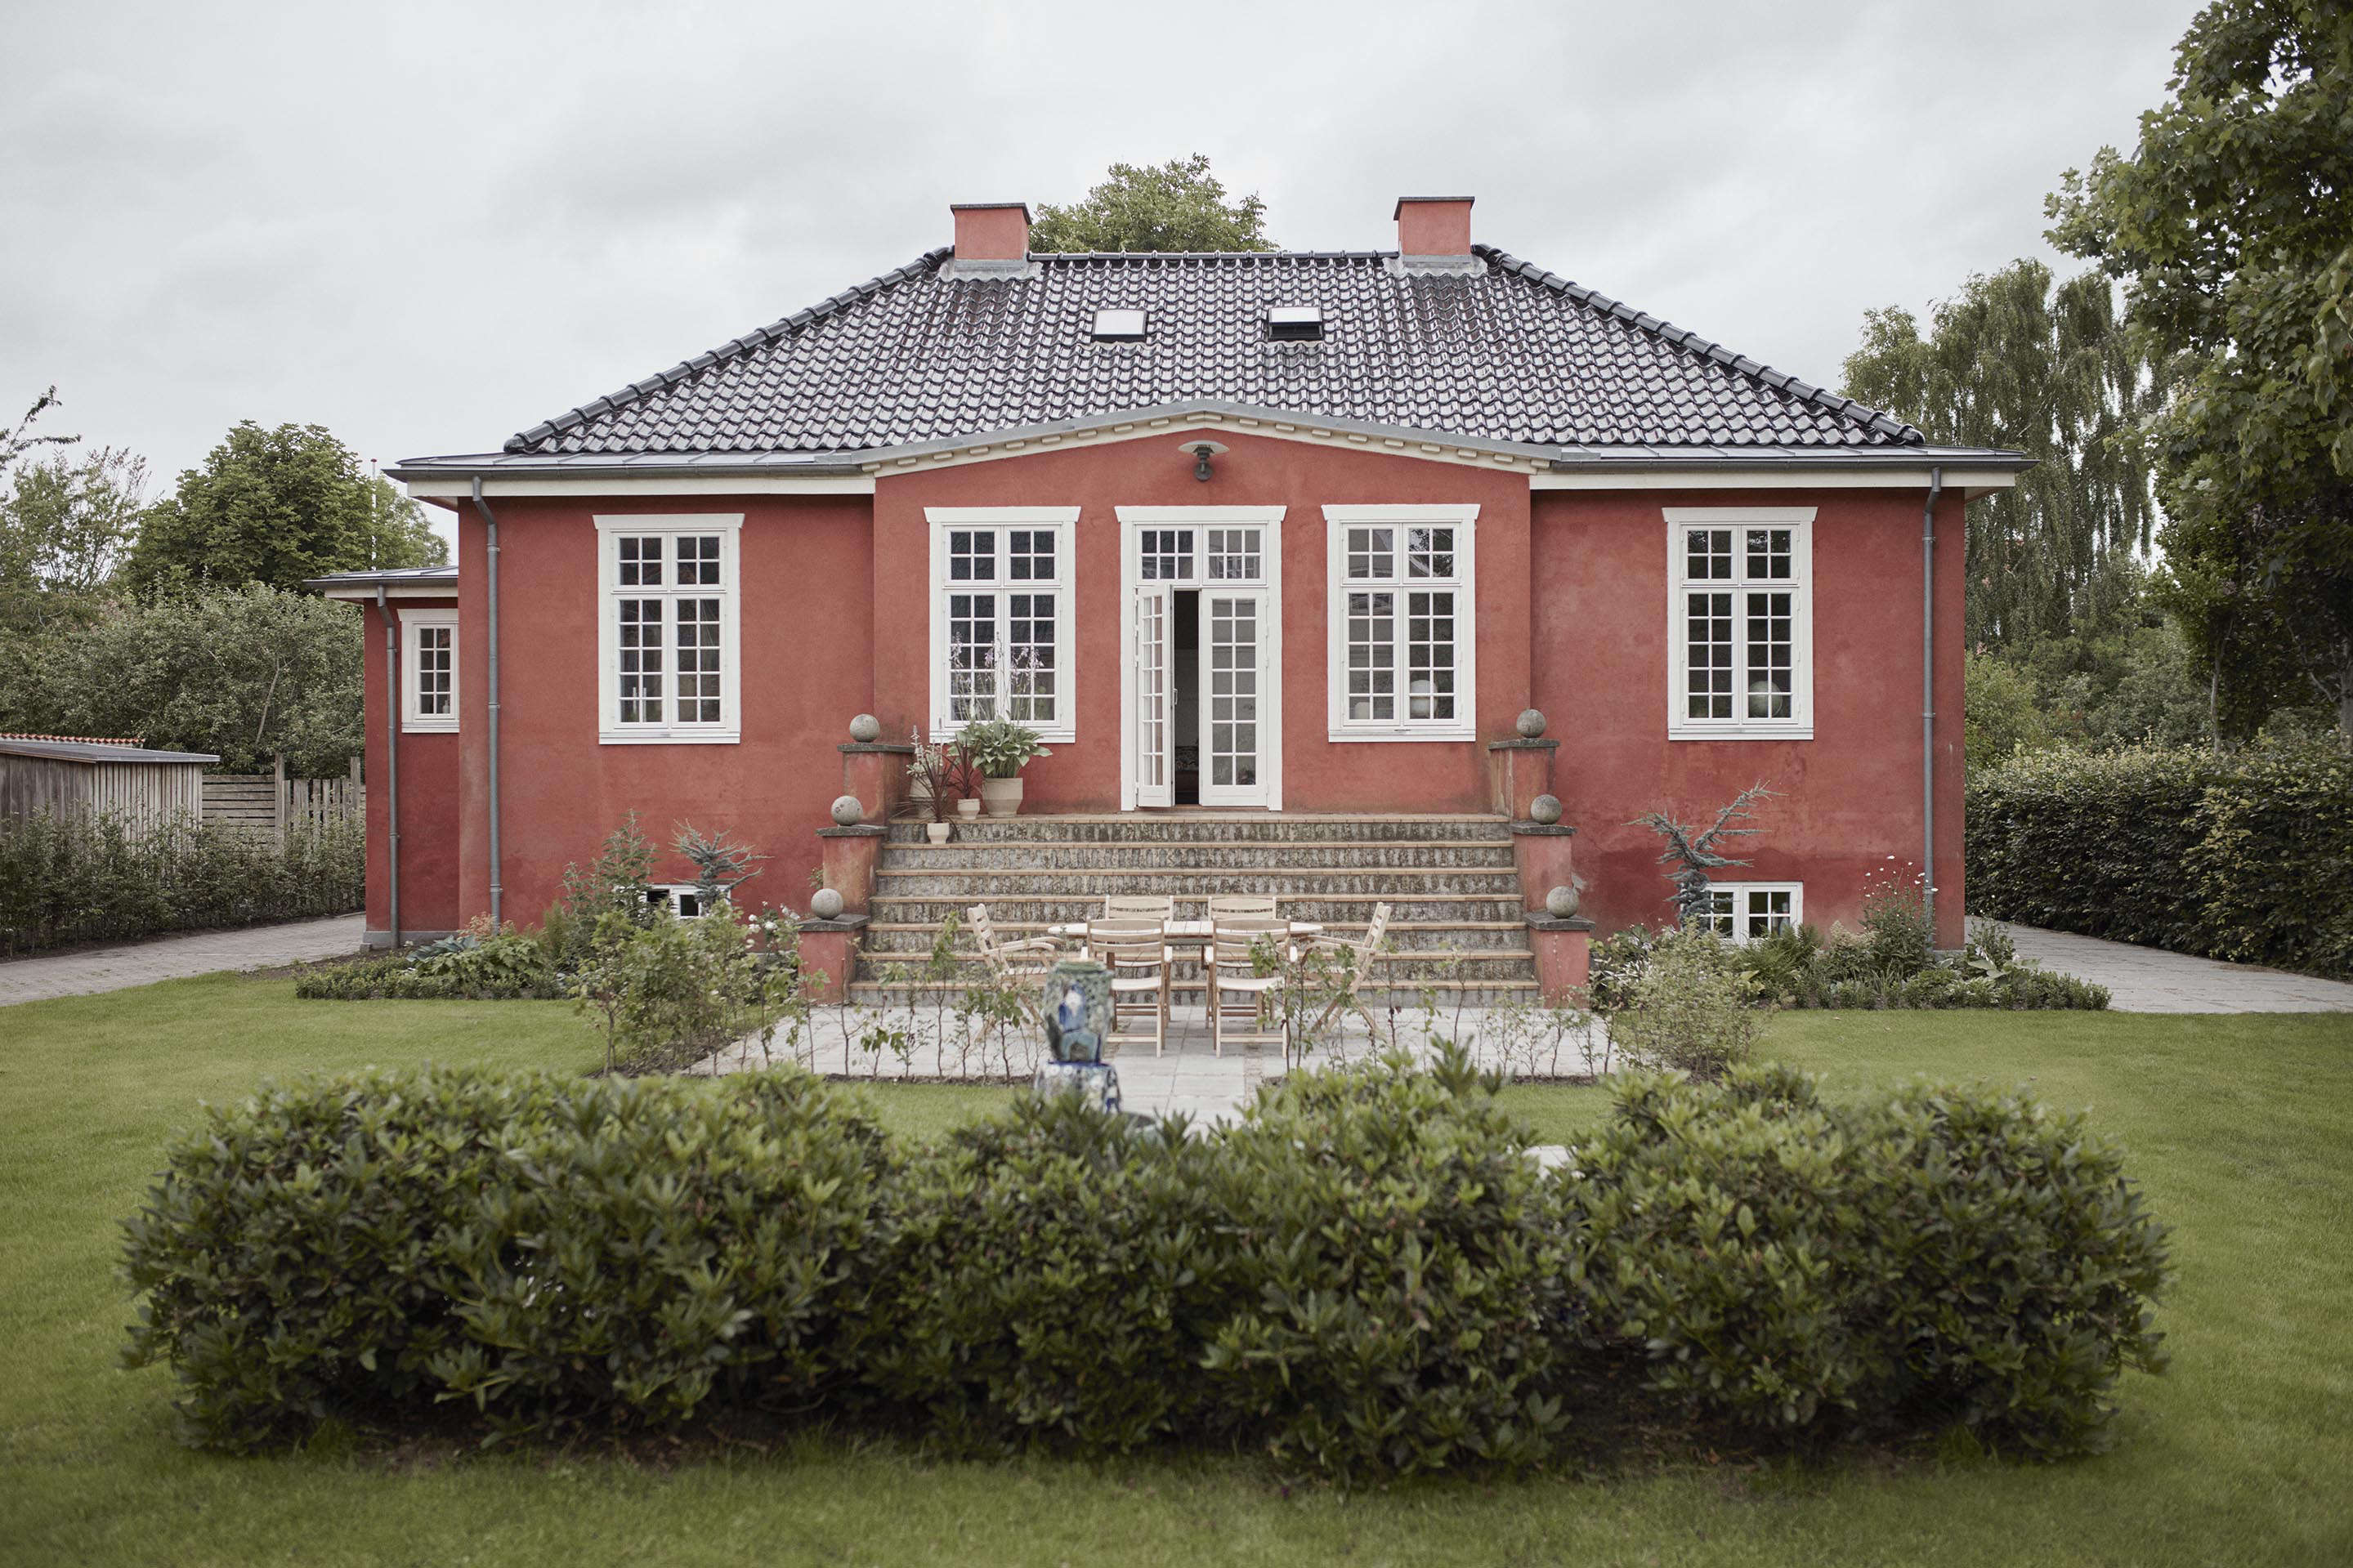 Little Pink House: A Creative Couple's Classic-with-a-Twist Home in Denmark - Remodelista